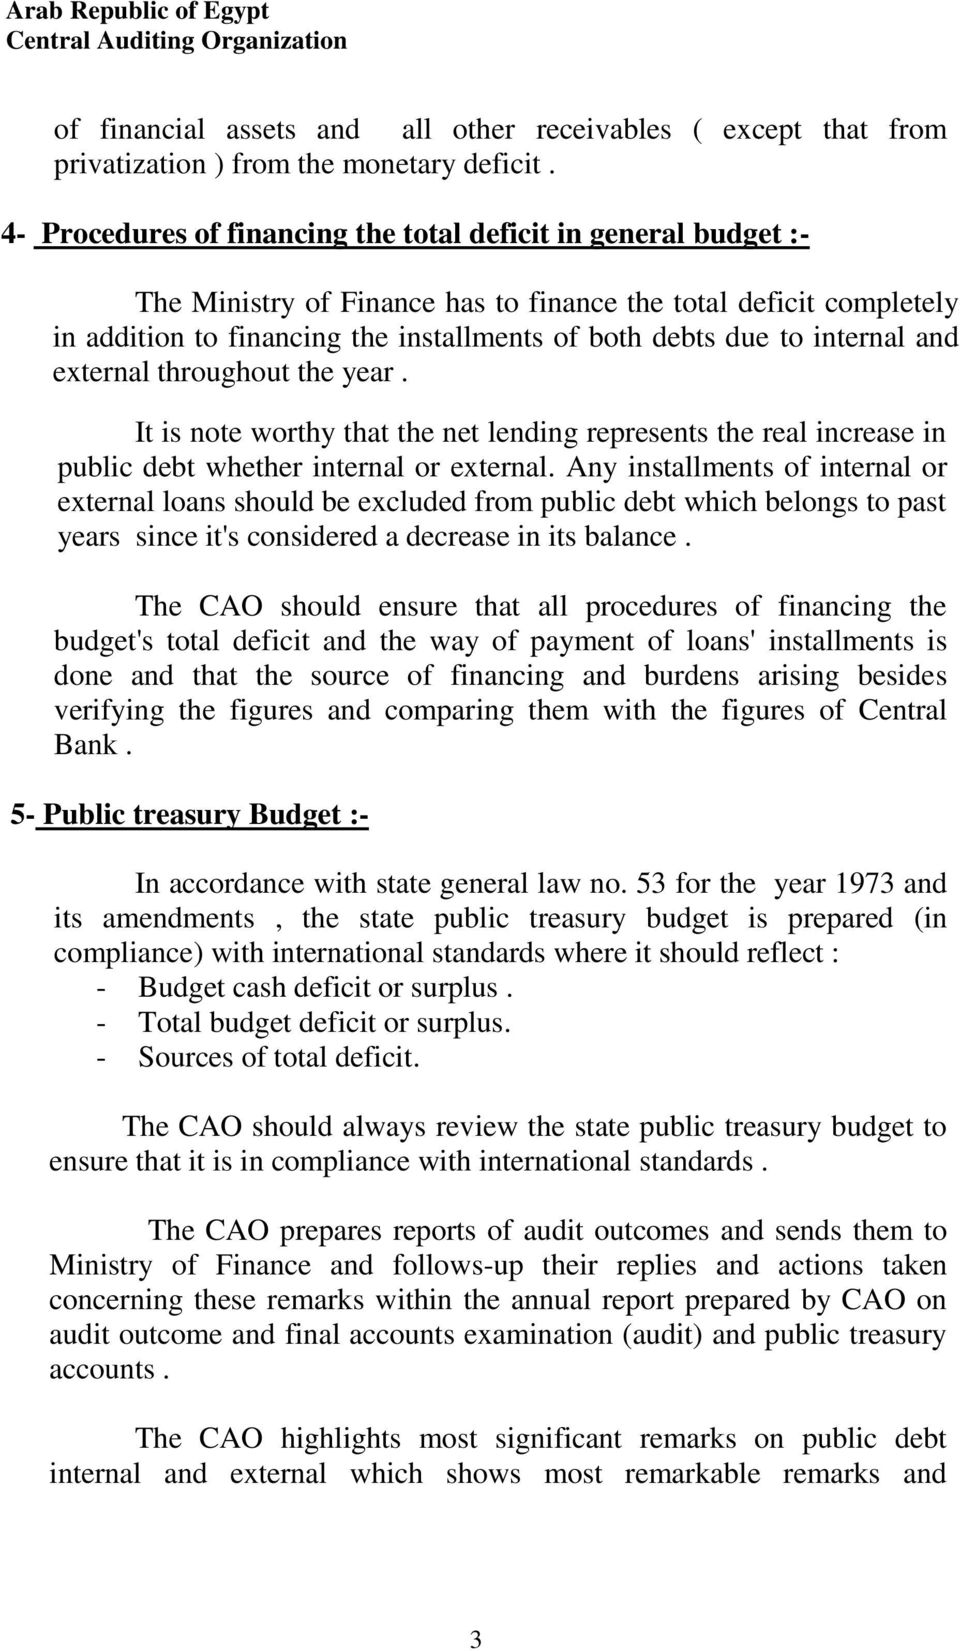 internal and external throughout the year. It is note worthy that the net lending represents the real increase in public debt whether internal or external.